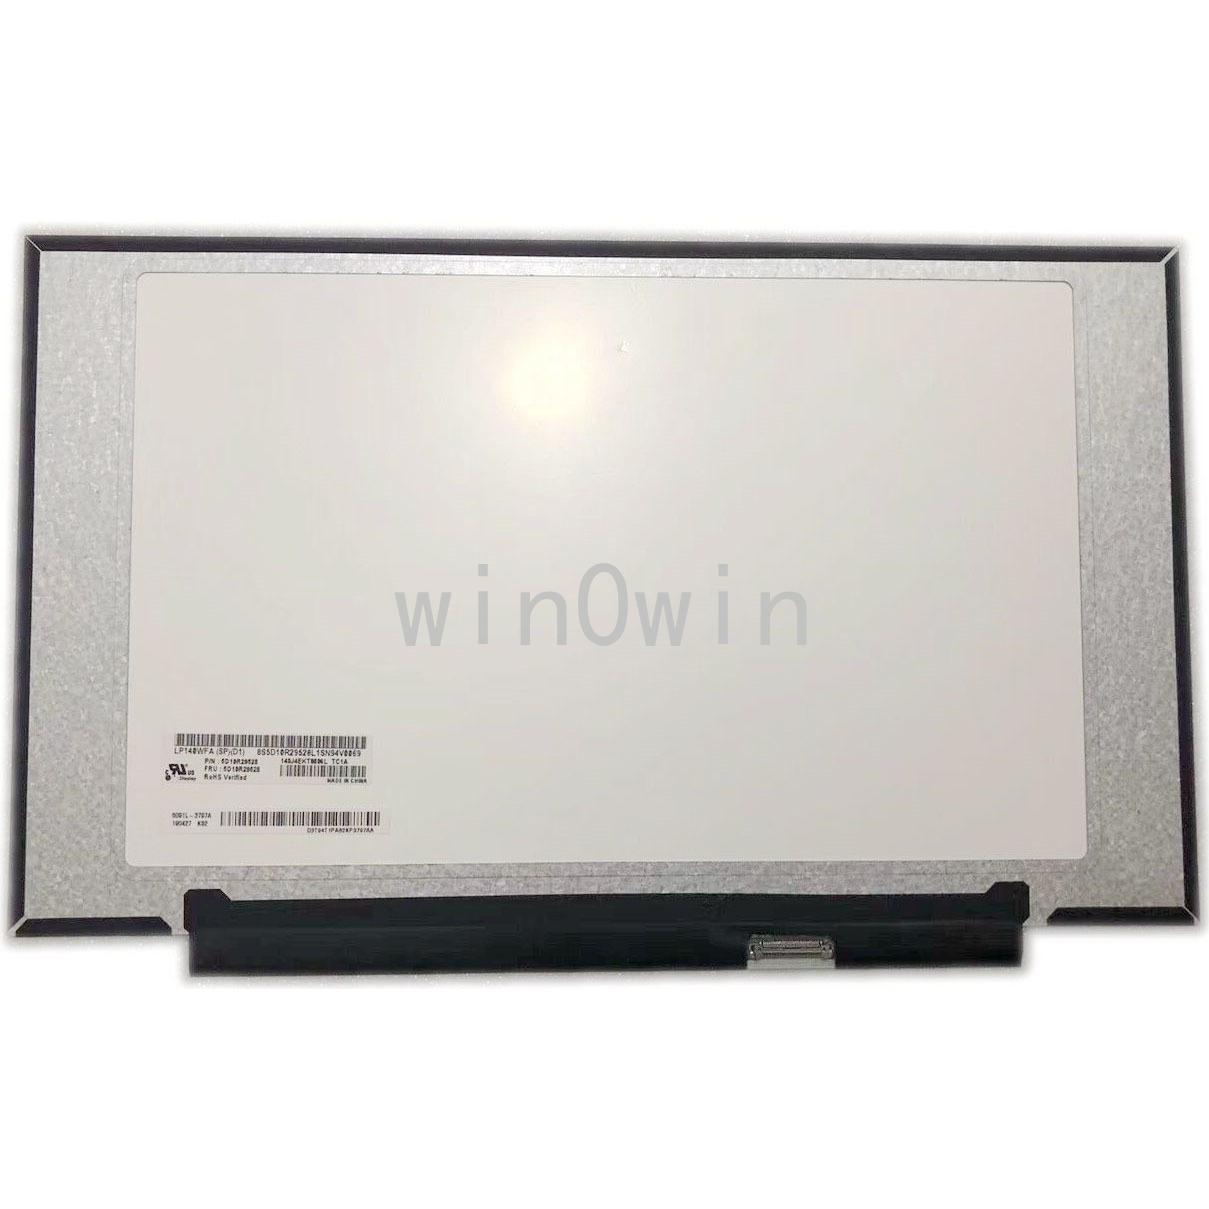 LP140WFA SPD1 Fit LP140WFA-SPD1 LCD SCREEN PANEL Matrix 1920X1080